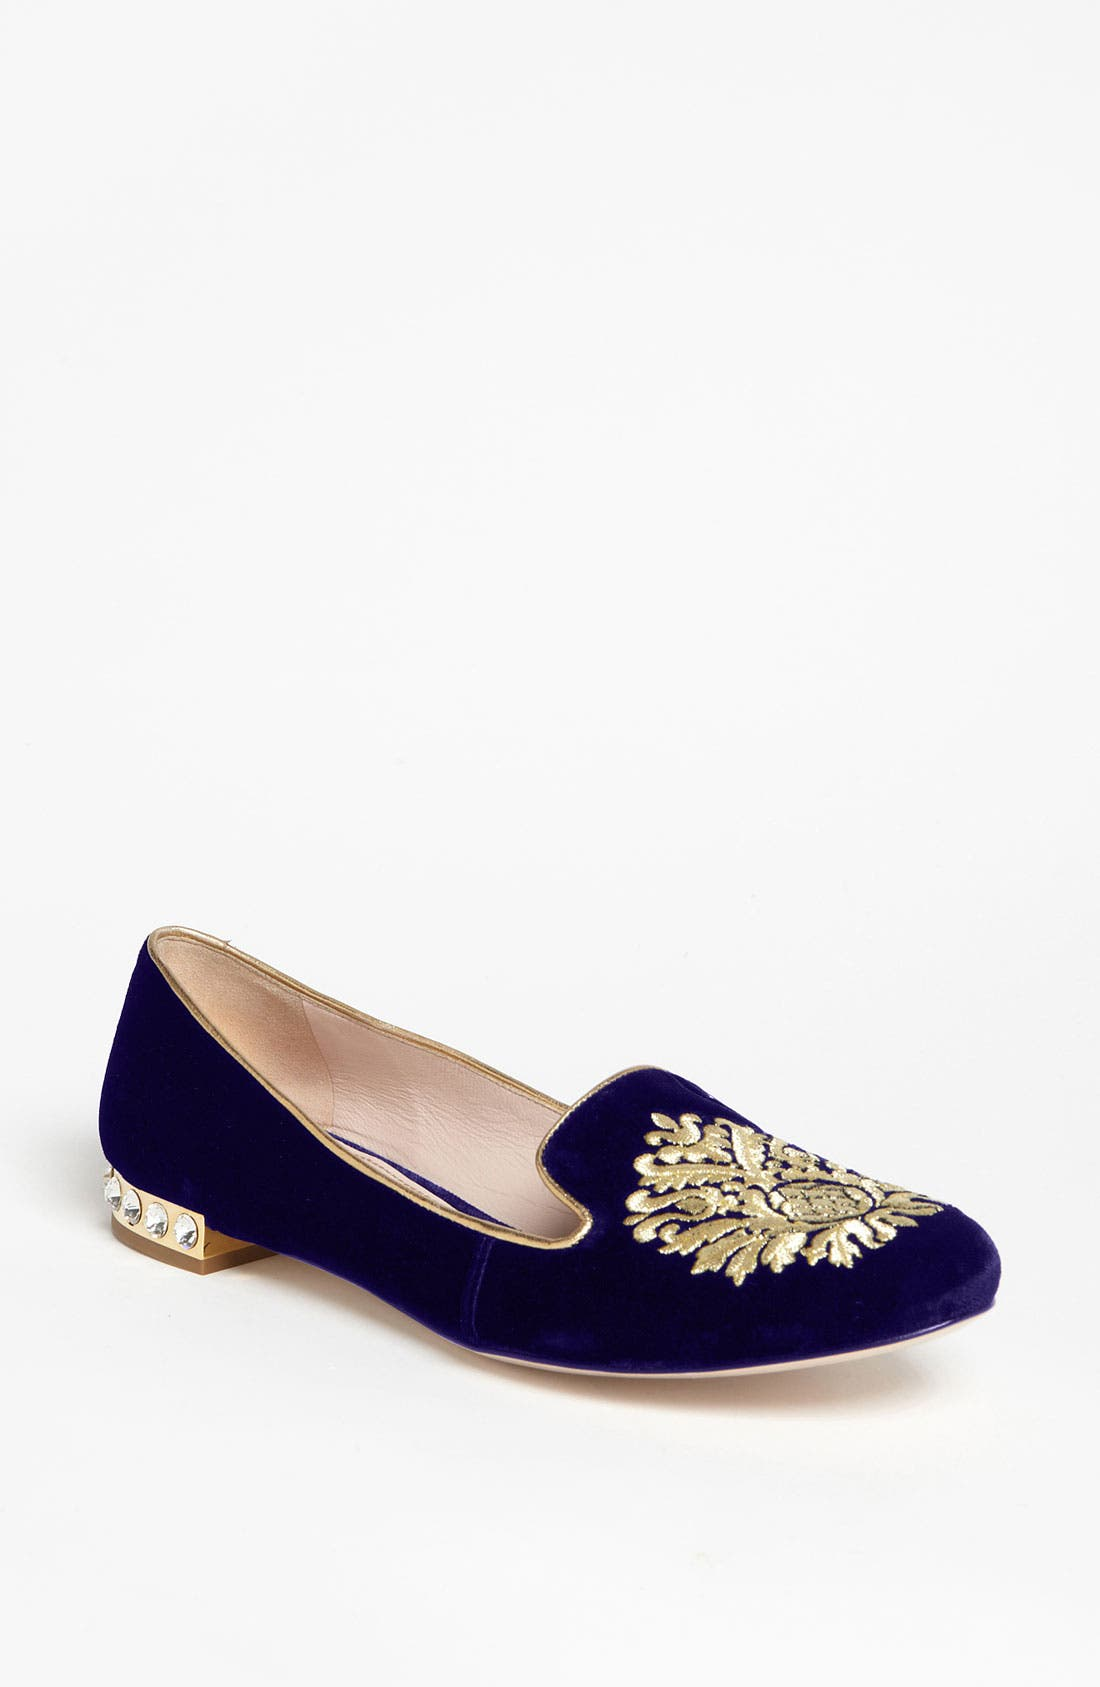 Alternate Image 1 Selected - Miu Miu 'Crest' Moccasin